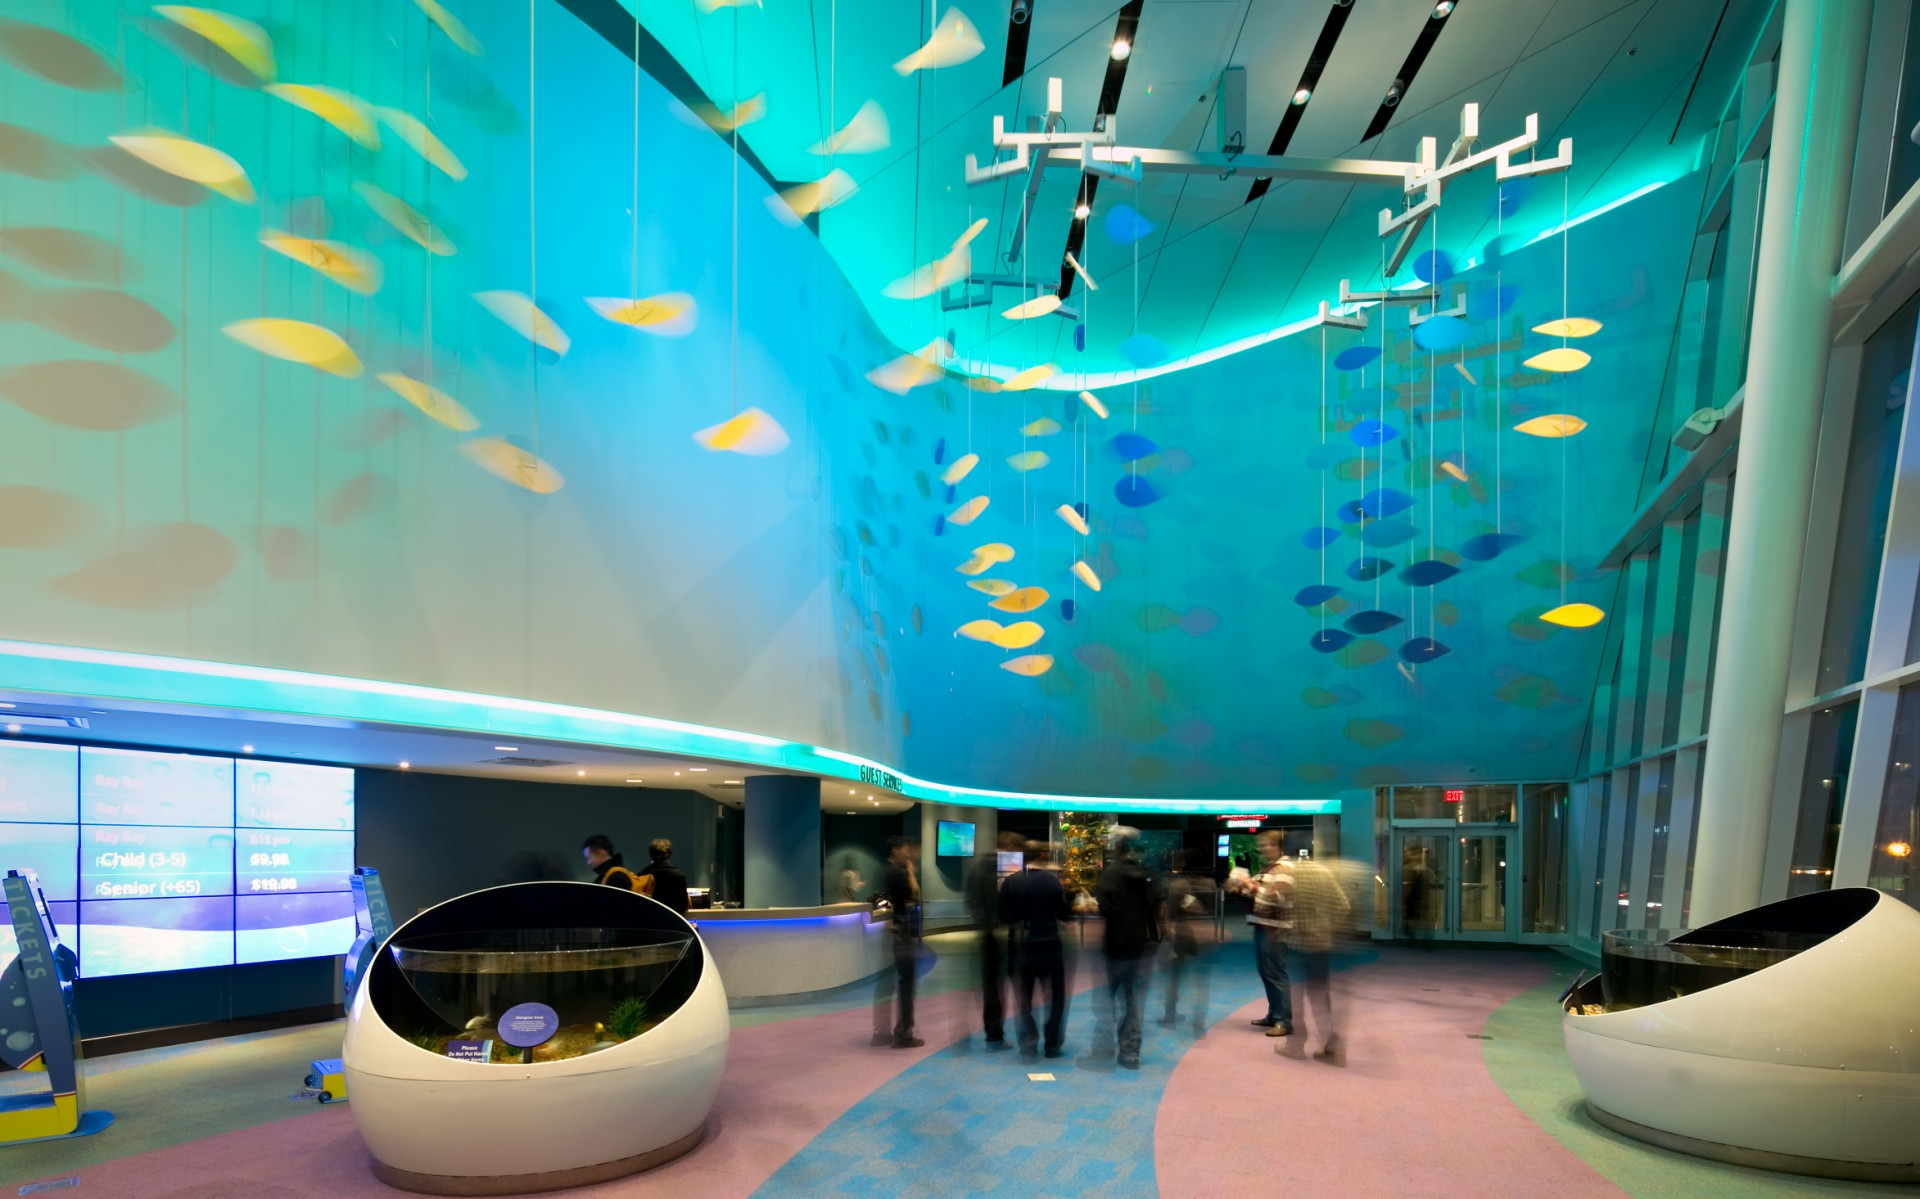 For Ripley's Aquarium of Canada, designers Mulvey+Banani broke from aquarium tradition, using an LED lighting system to avoid typical maintenance and operational issues.